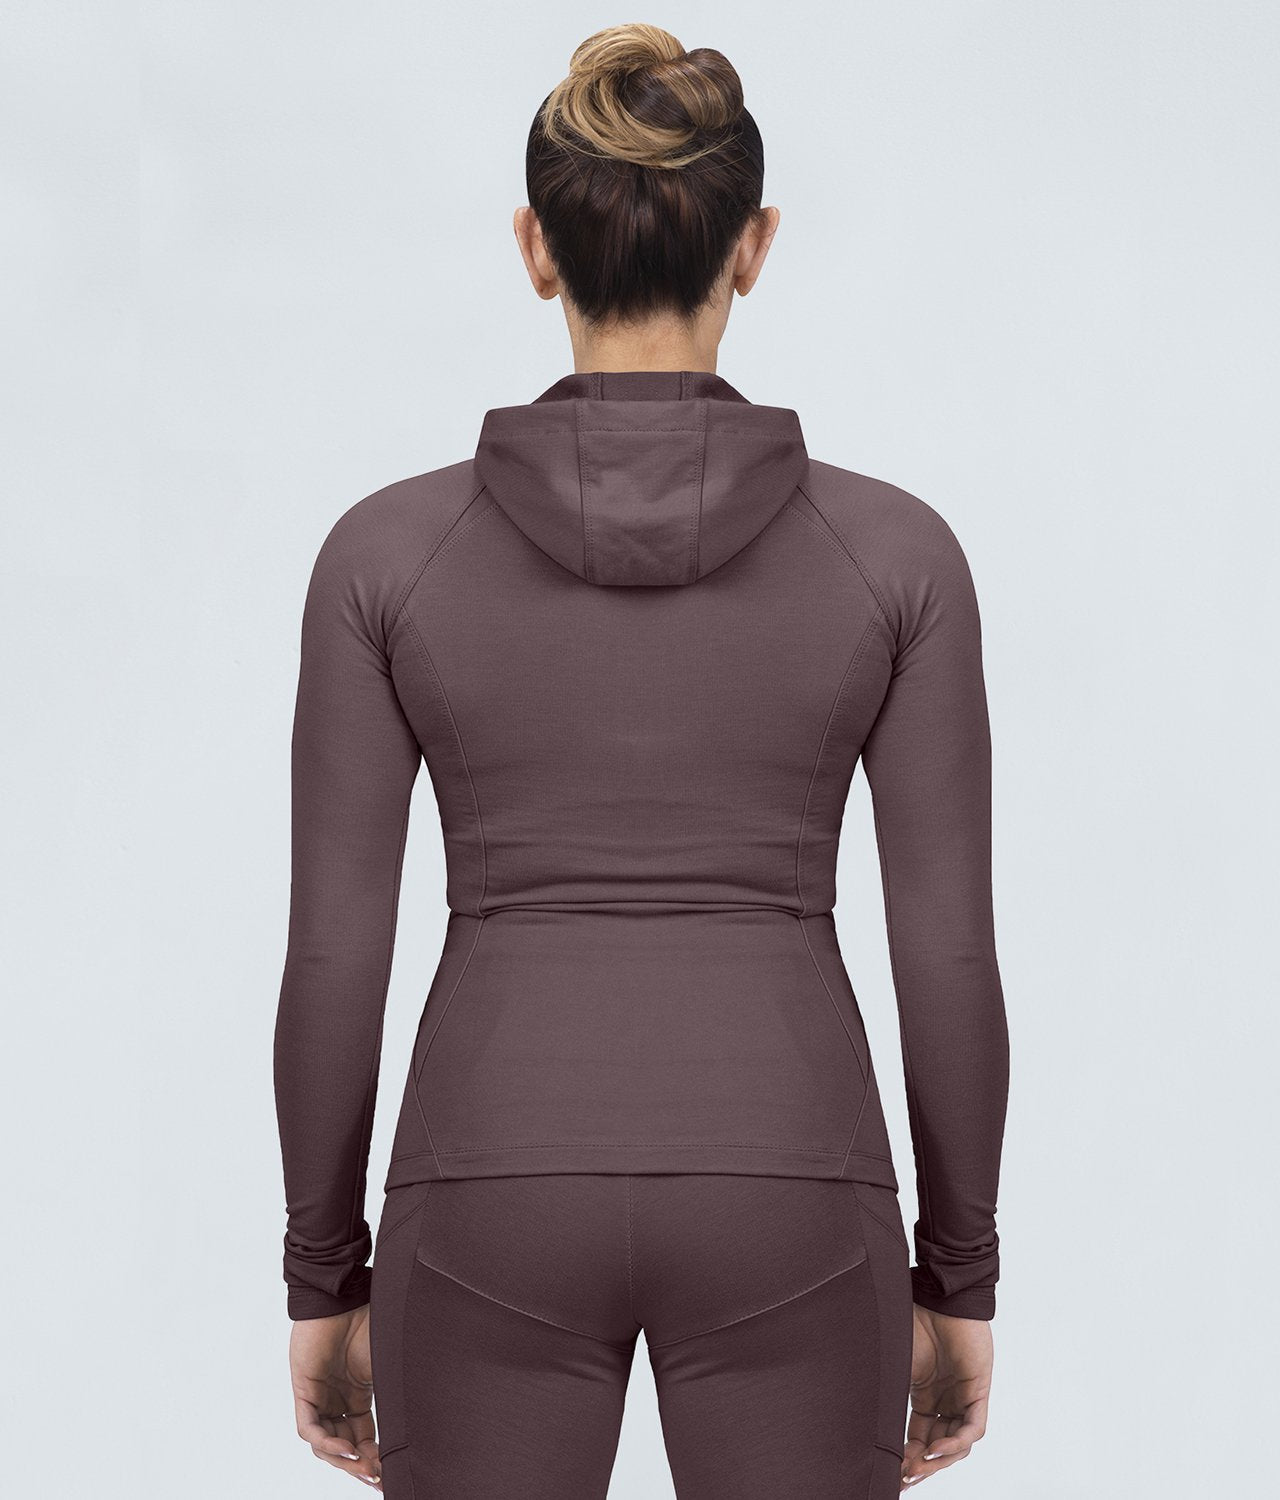 Born Tough United Kingdom Contoured Ash Brown Zippered Closure Sleeve Loops Gym Workout Tracksuit Hoodie for Women